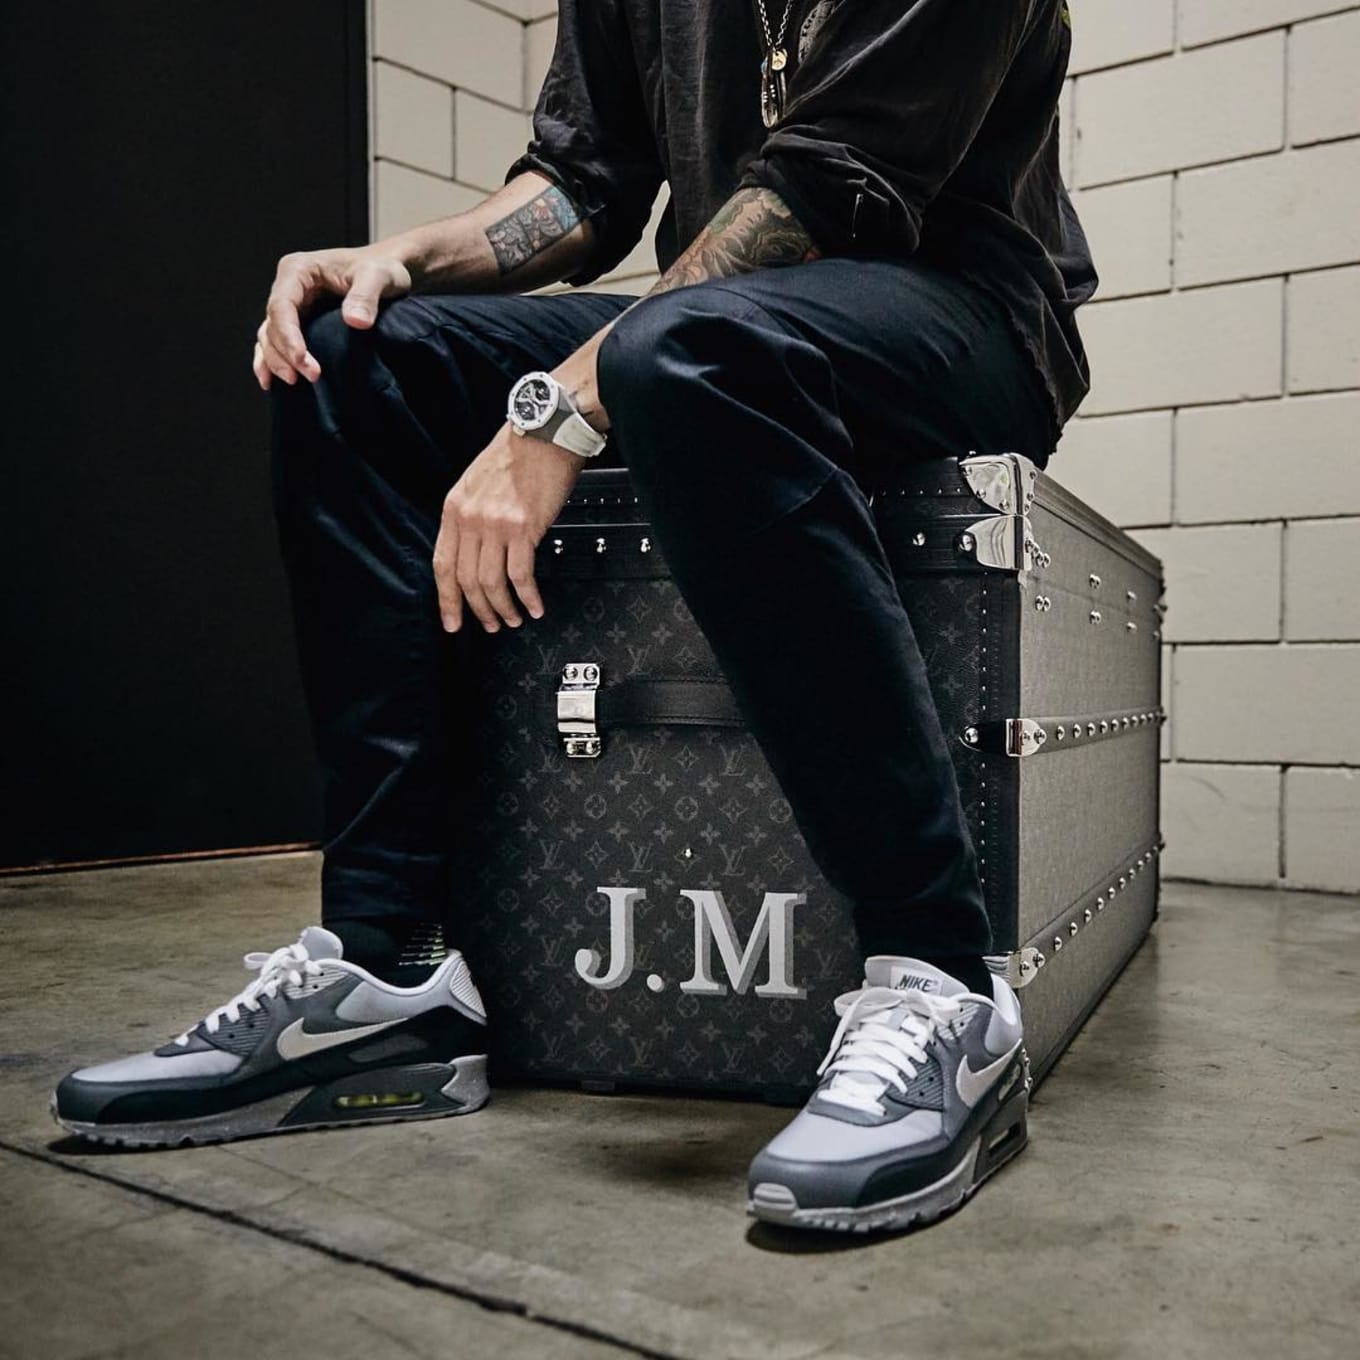 free shipping 68a45 55a0b John Mayer s Unique Approach to Releasing His Own Nikes